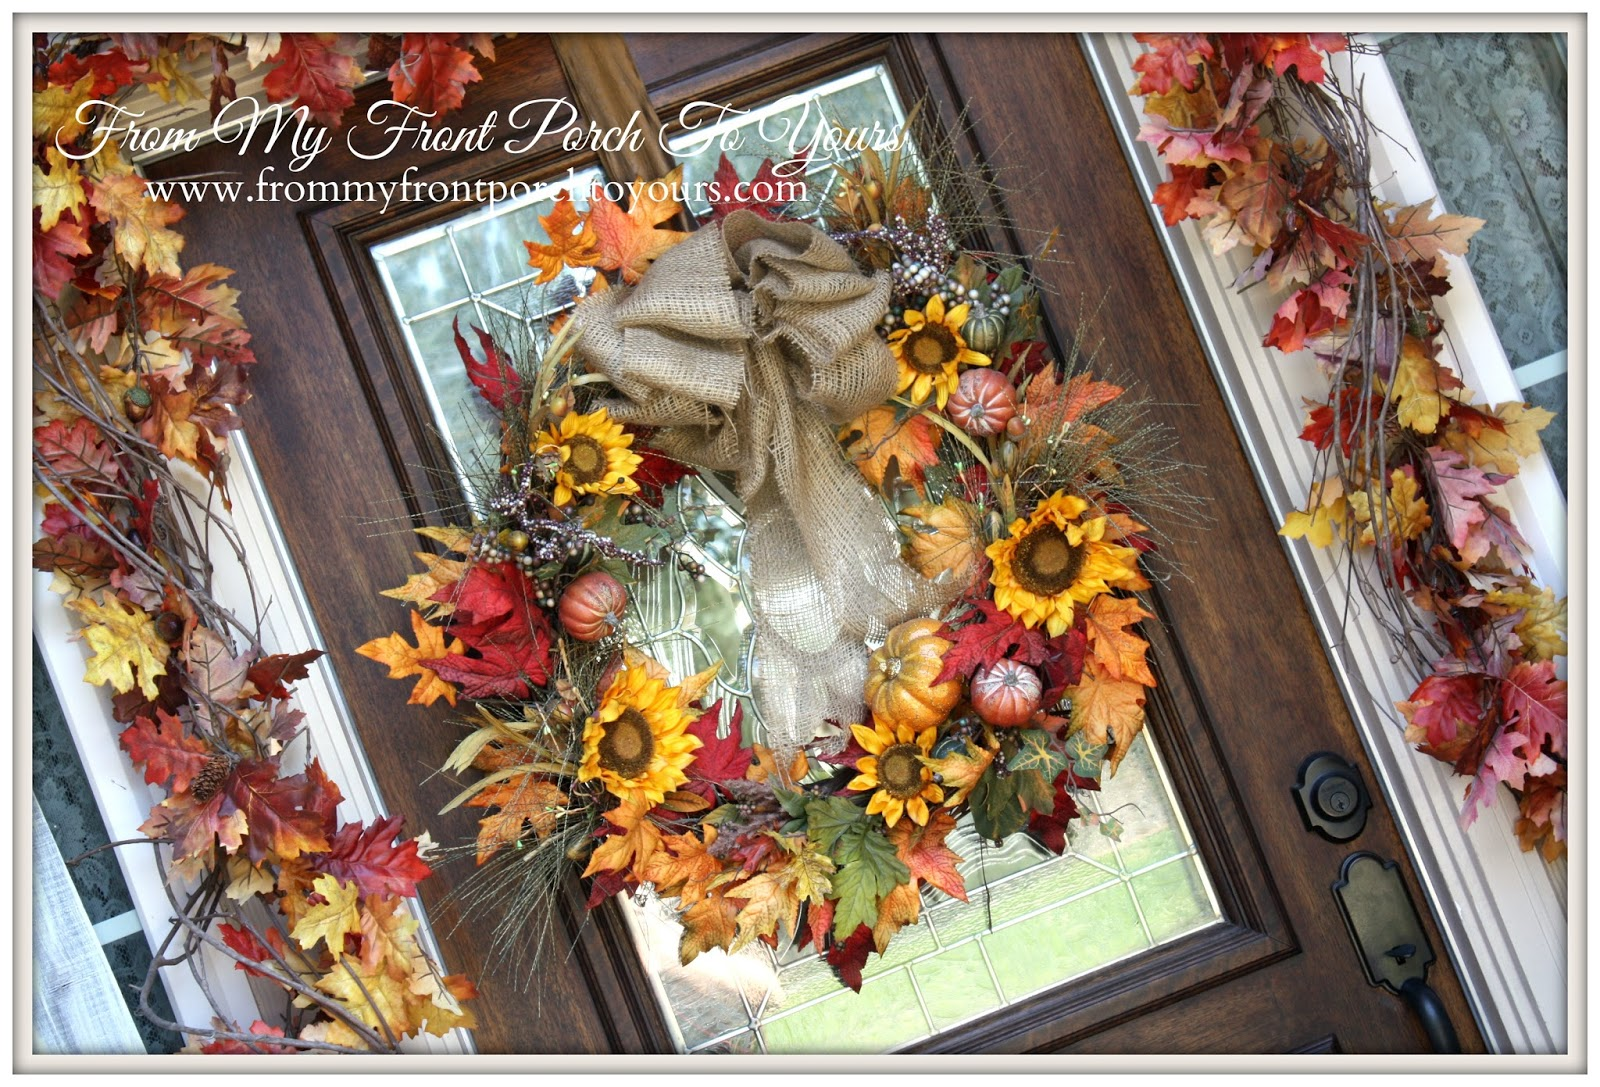 From My Front Porch To Yours- Falling For Fall Porch Party- Sunflower DIY Wreath